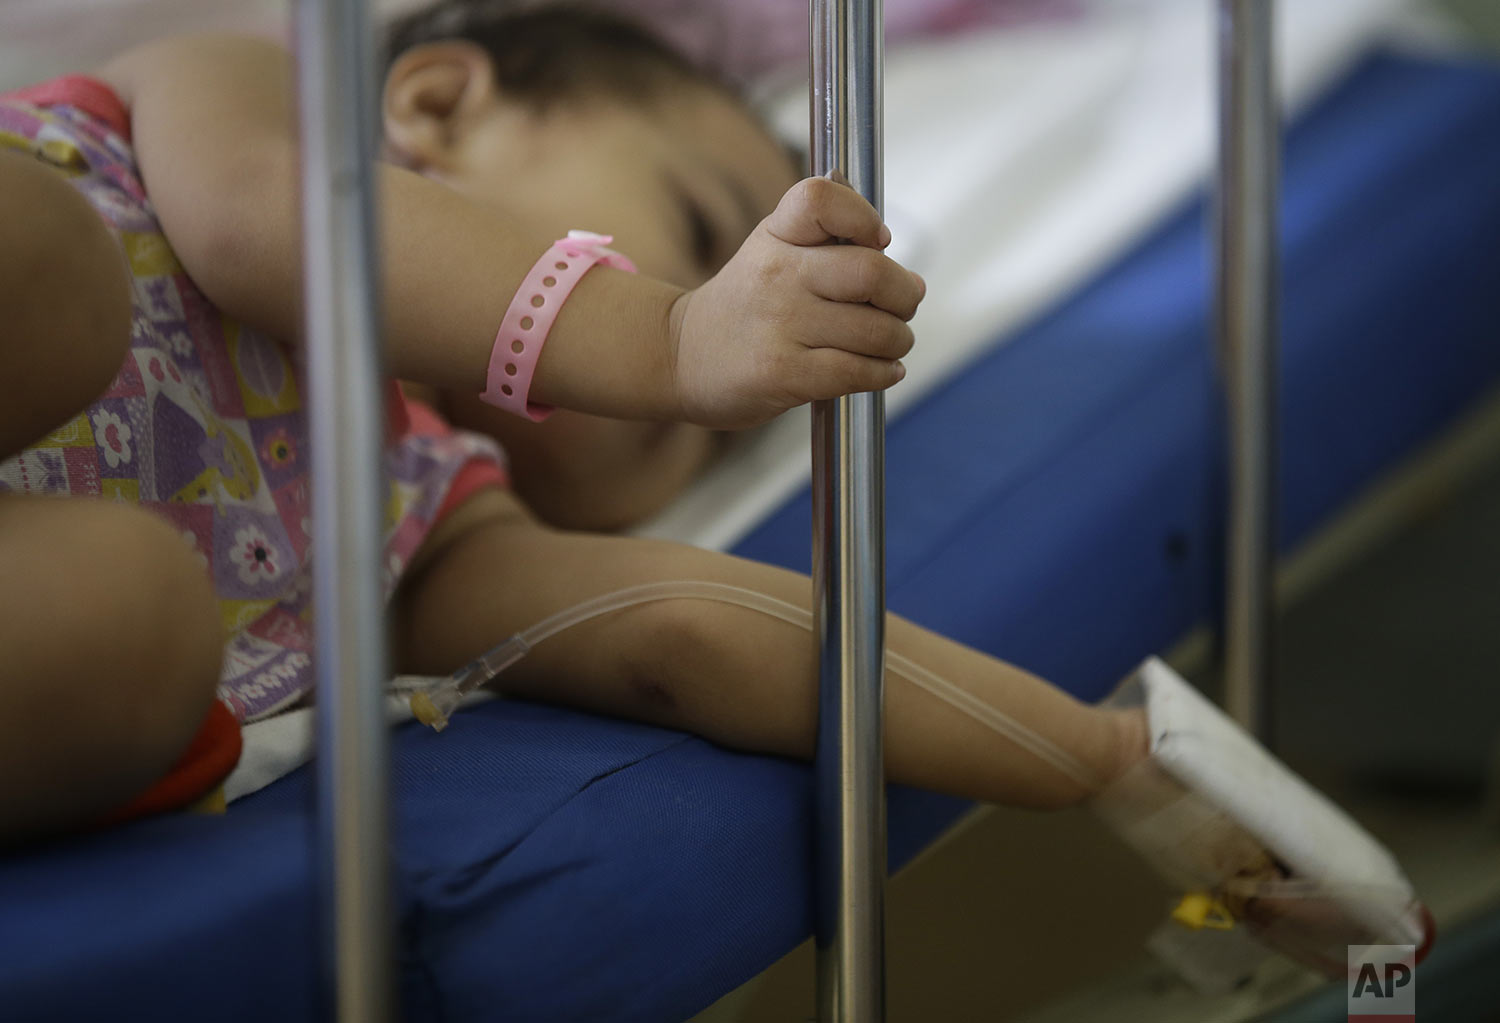 A young dengue patient rests inside a room at the San Lazaro government hospital in Manila, Philippines on Wednesday, Aug. 7, 2019. (AP Photo/Aaron Favila)